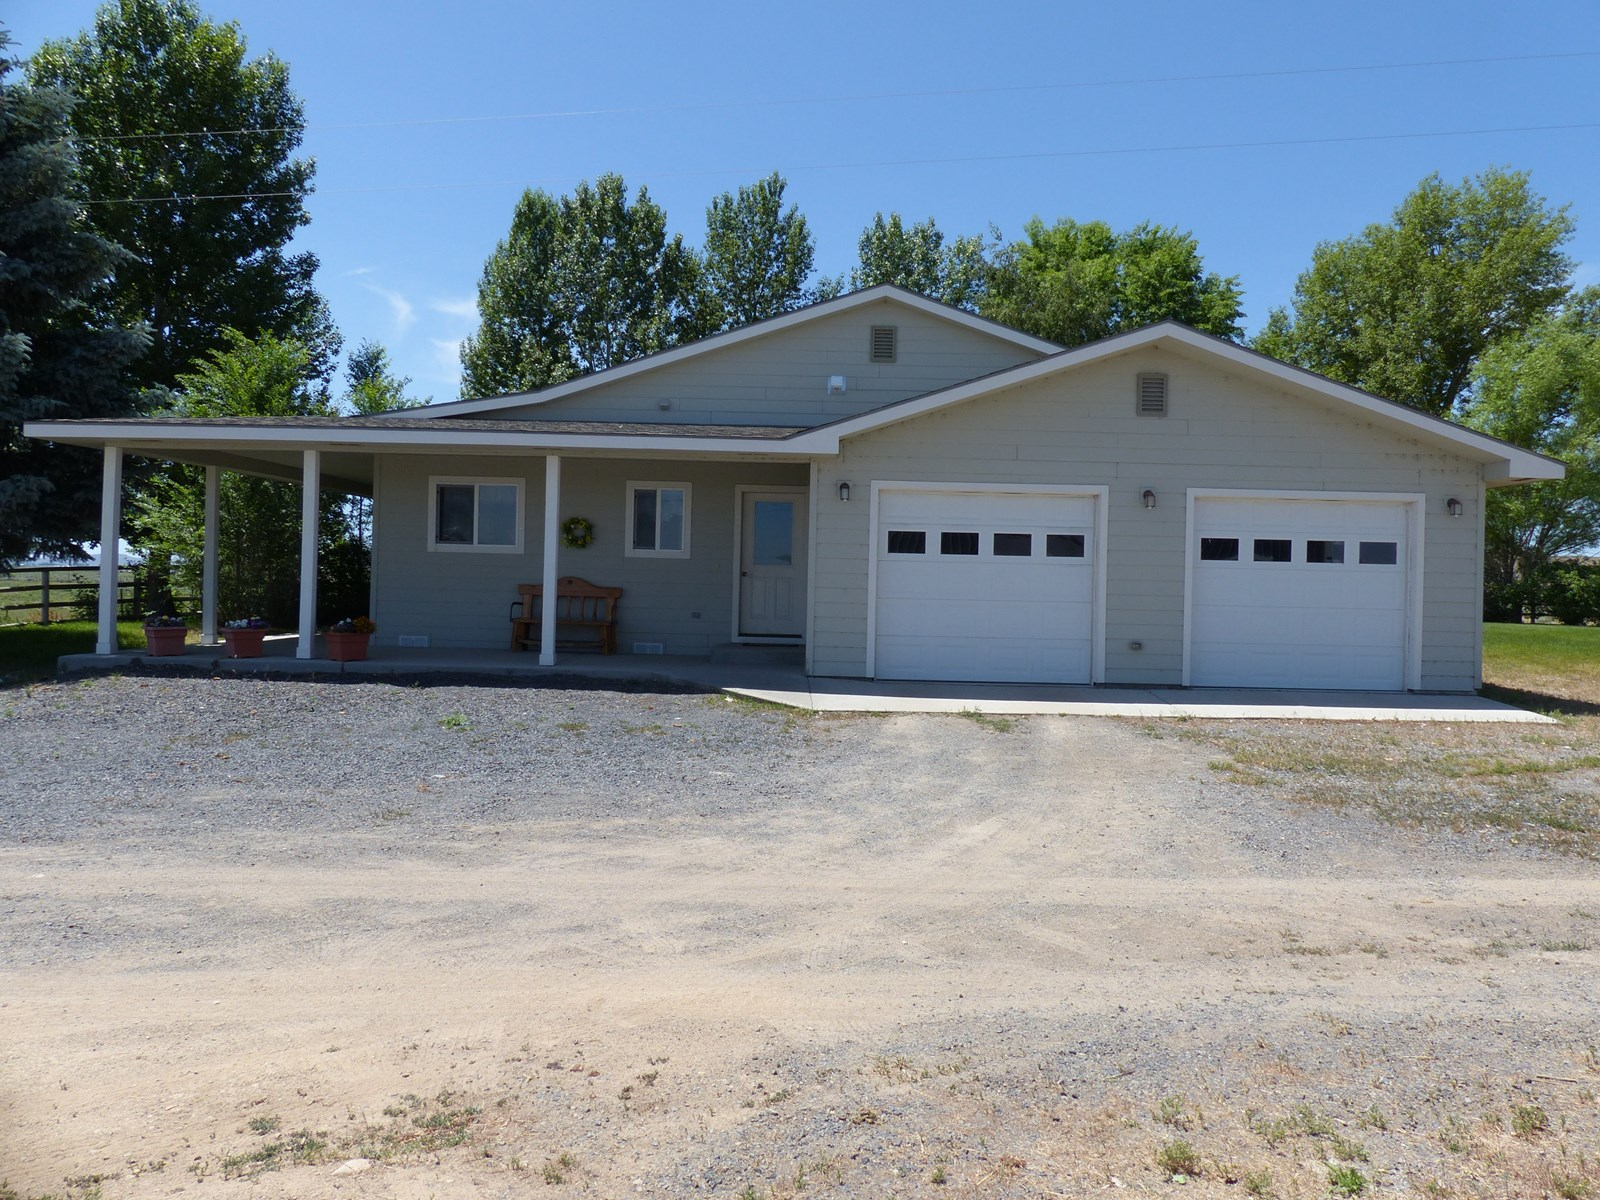 BURNS, OR -  318+/- ACRES - WATER RIGHTS - REMODELED HOME